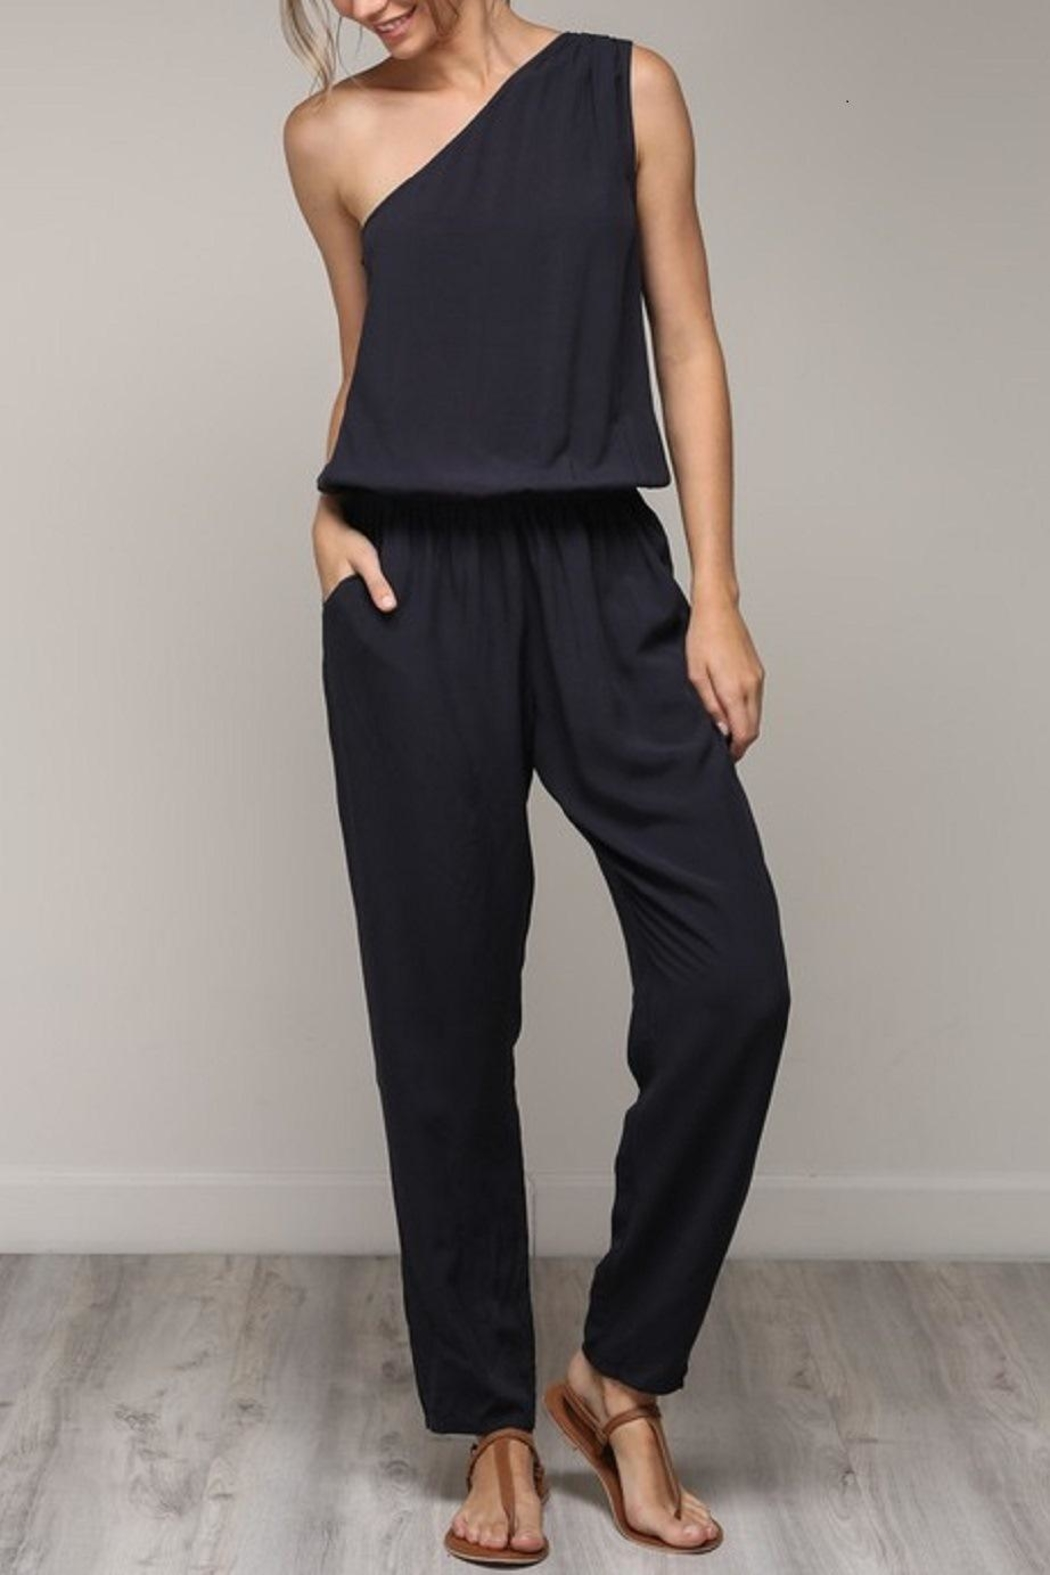 2a43a0210516 Mustard Seed One Shoulder Jumpsuit from Boston by Addicted — Shoptiques